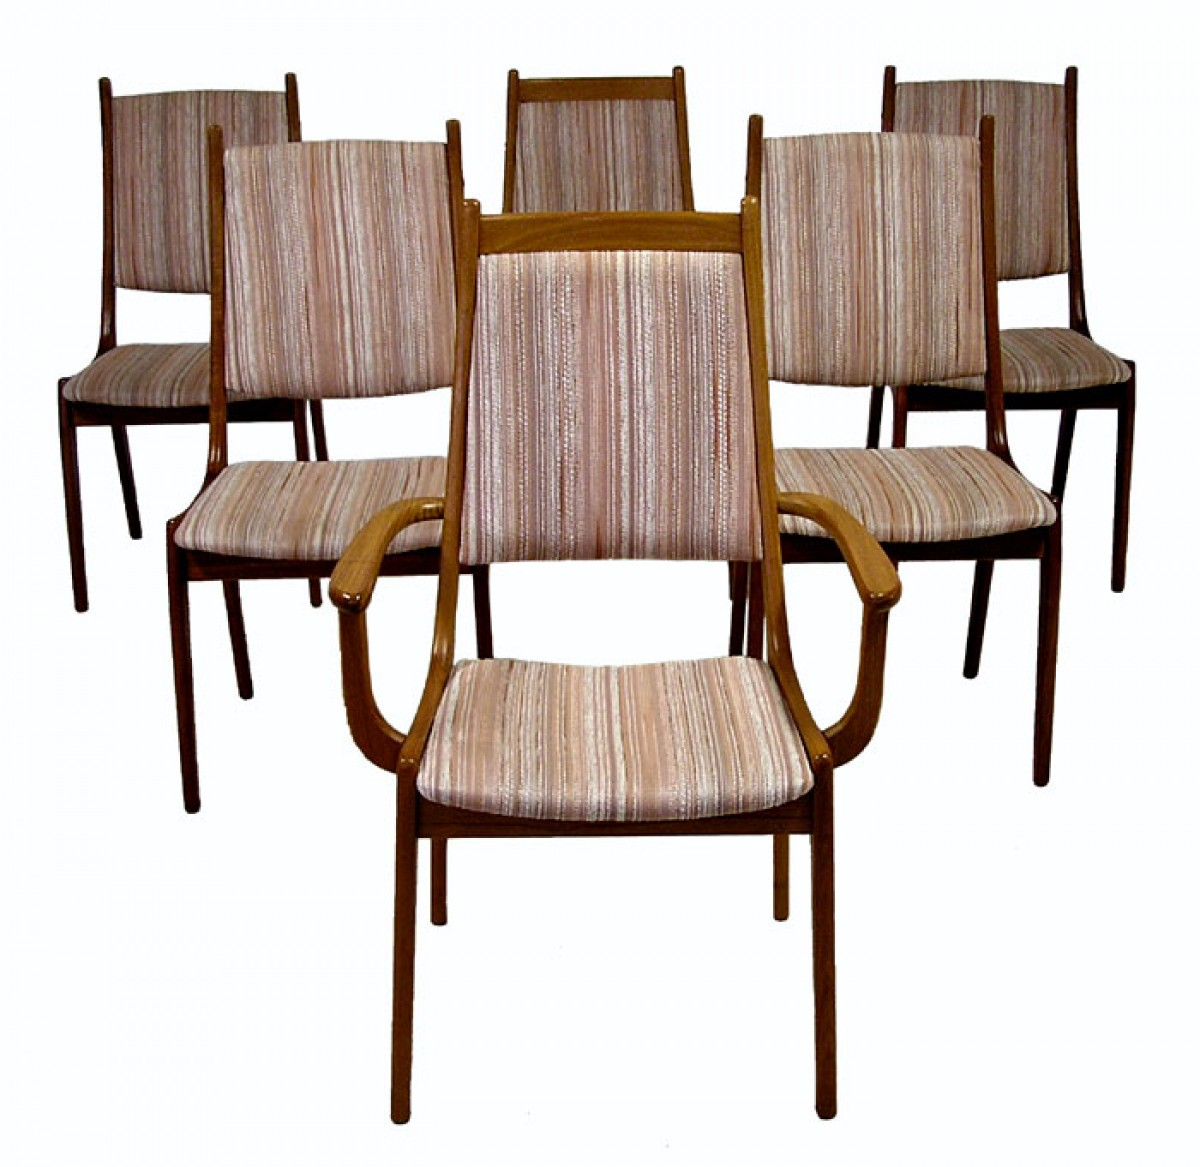 196070s Teak Dining Chairs Set Of 6  Hoopers Modern